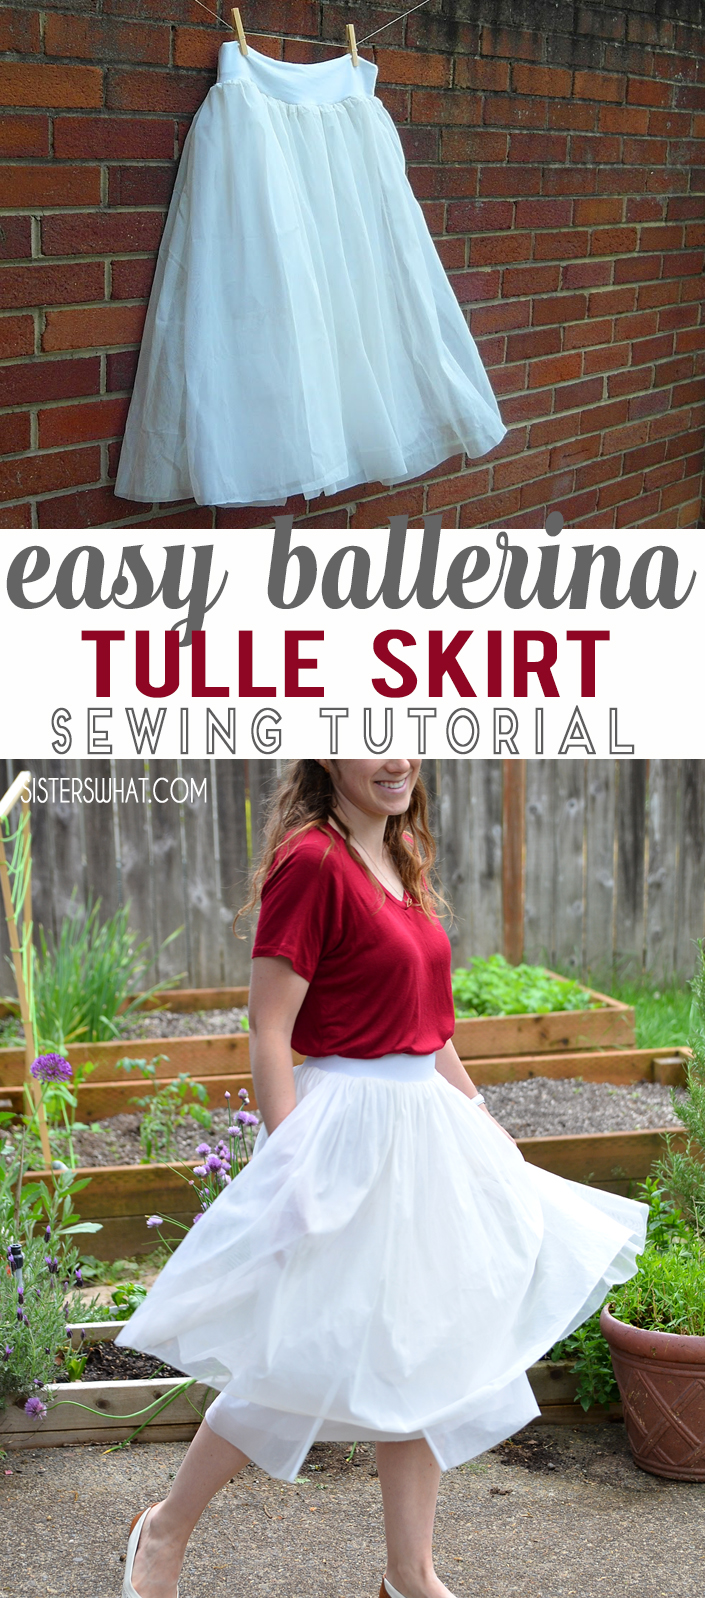 This fancy skirt is a easy refashion from chiffon curtains. An easy sewing tutorial.